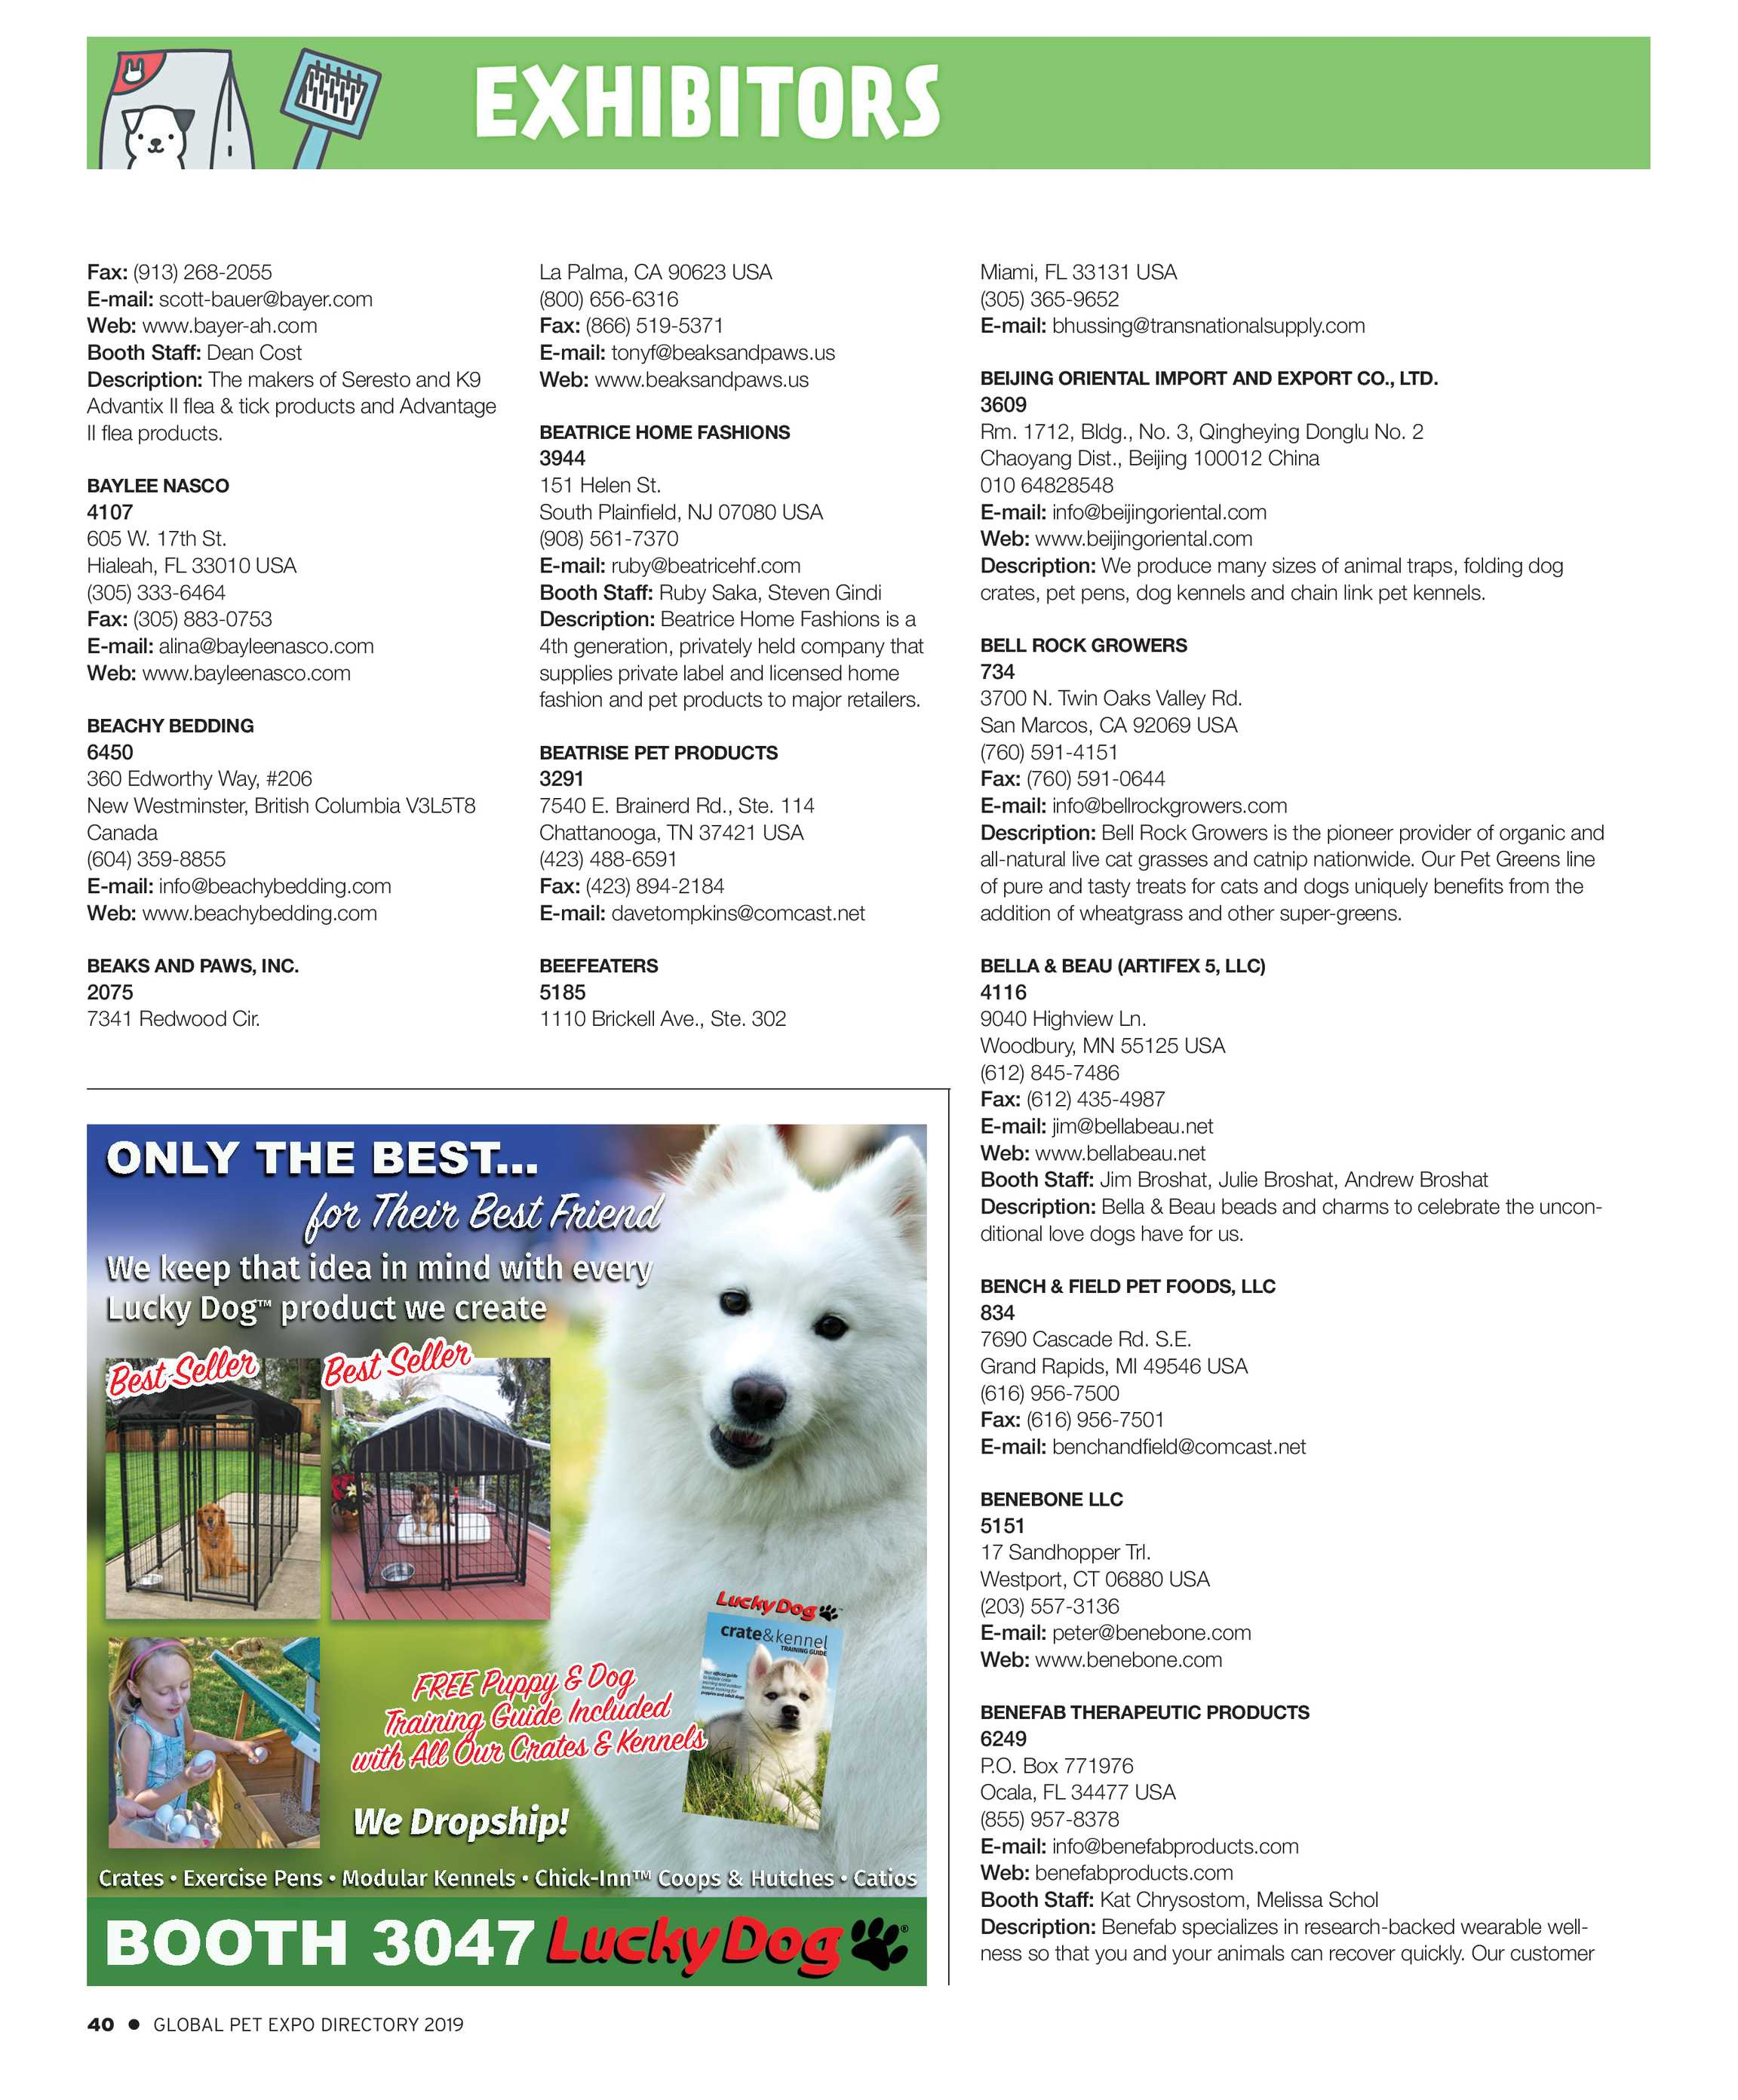 Pet Business - Global Pet Expo Show Directory 2019 - page 40